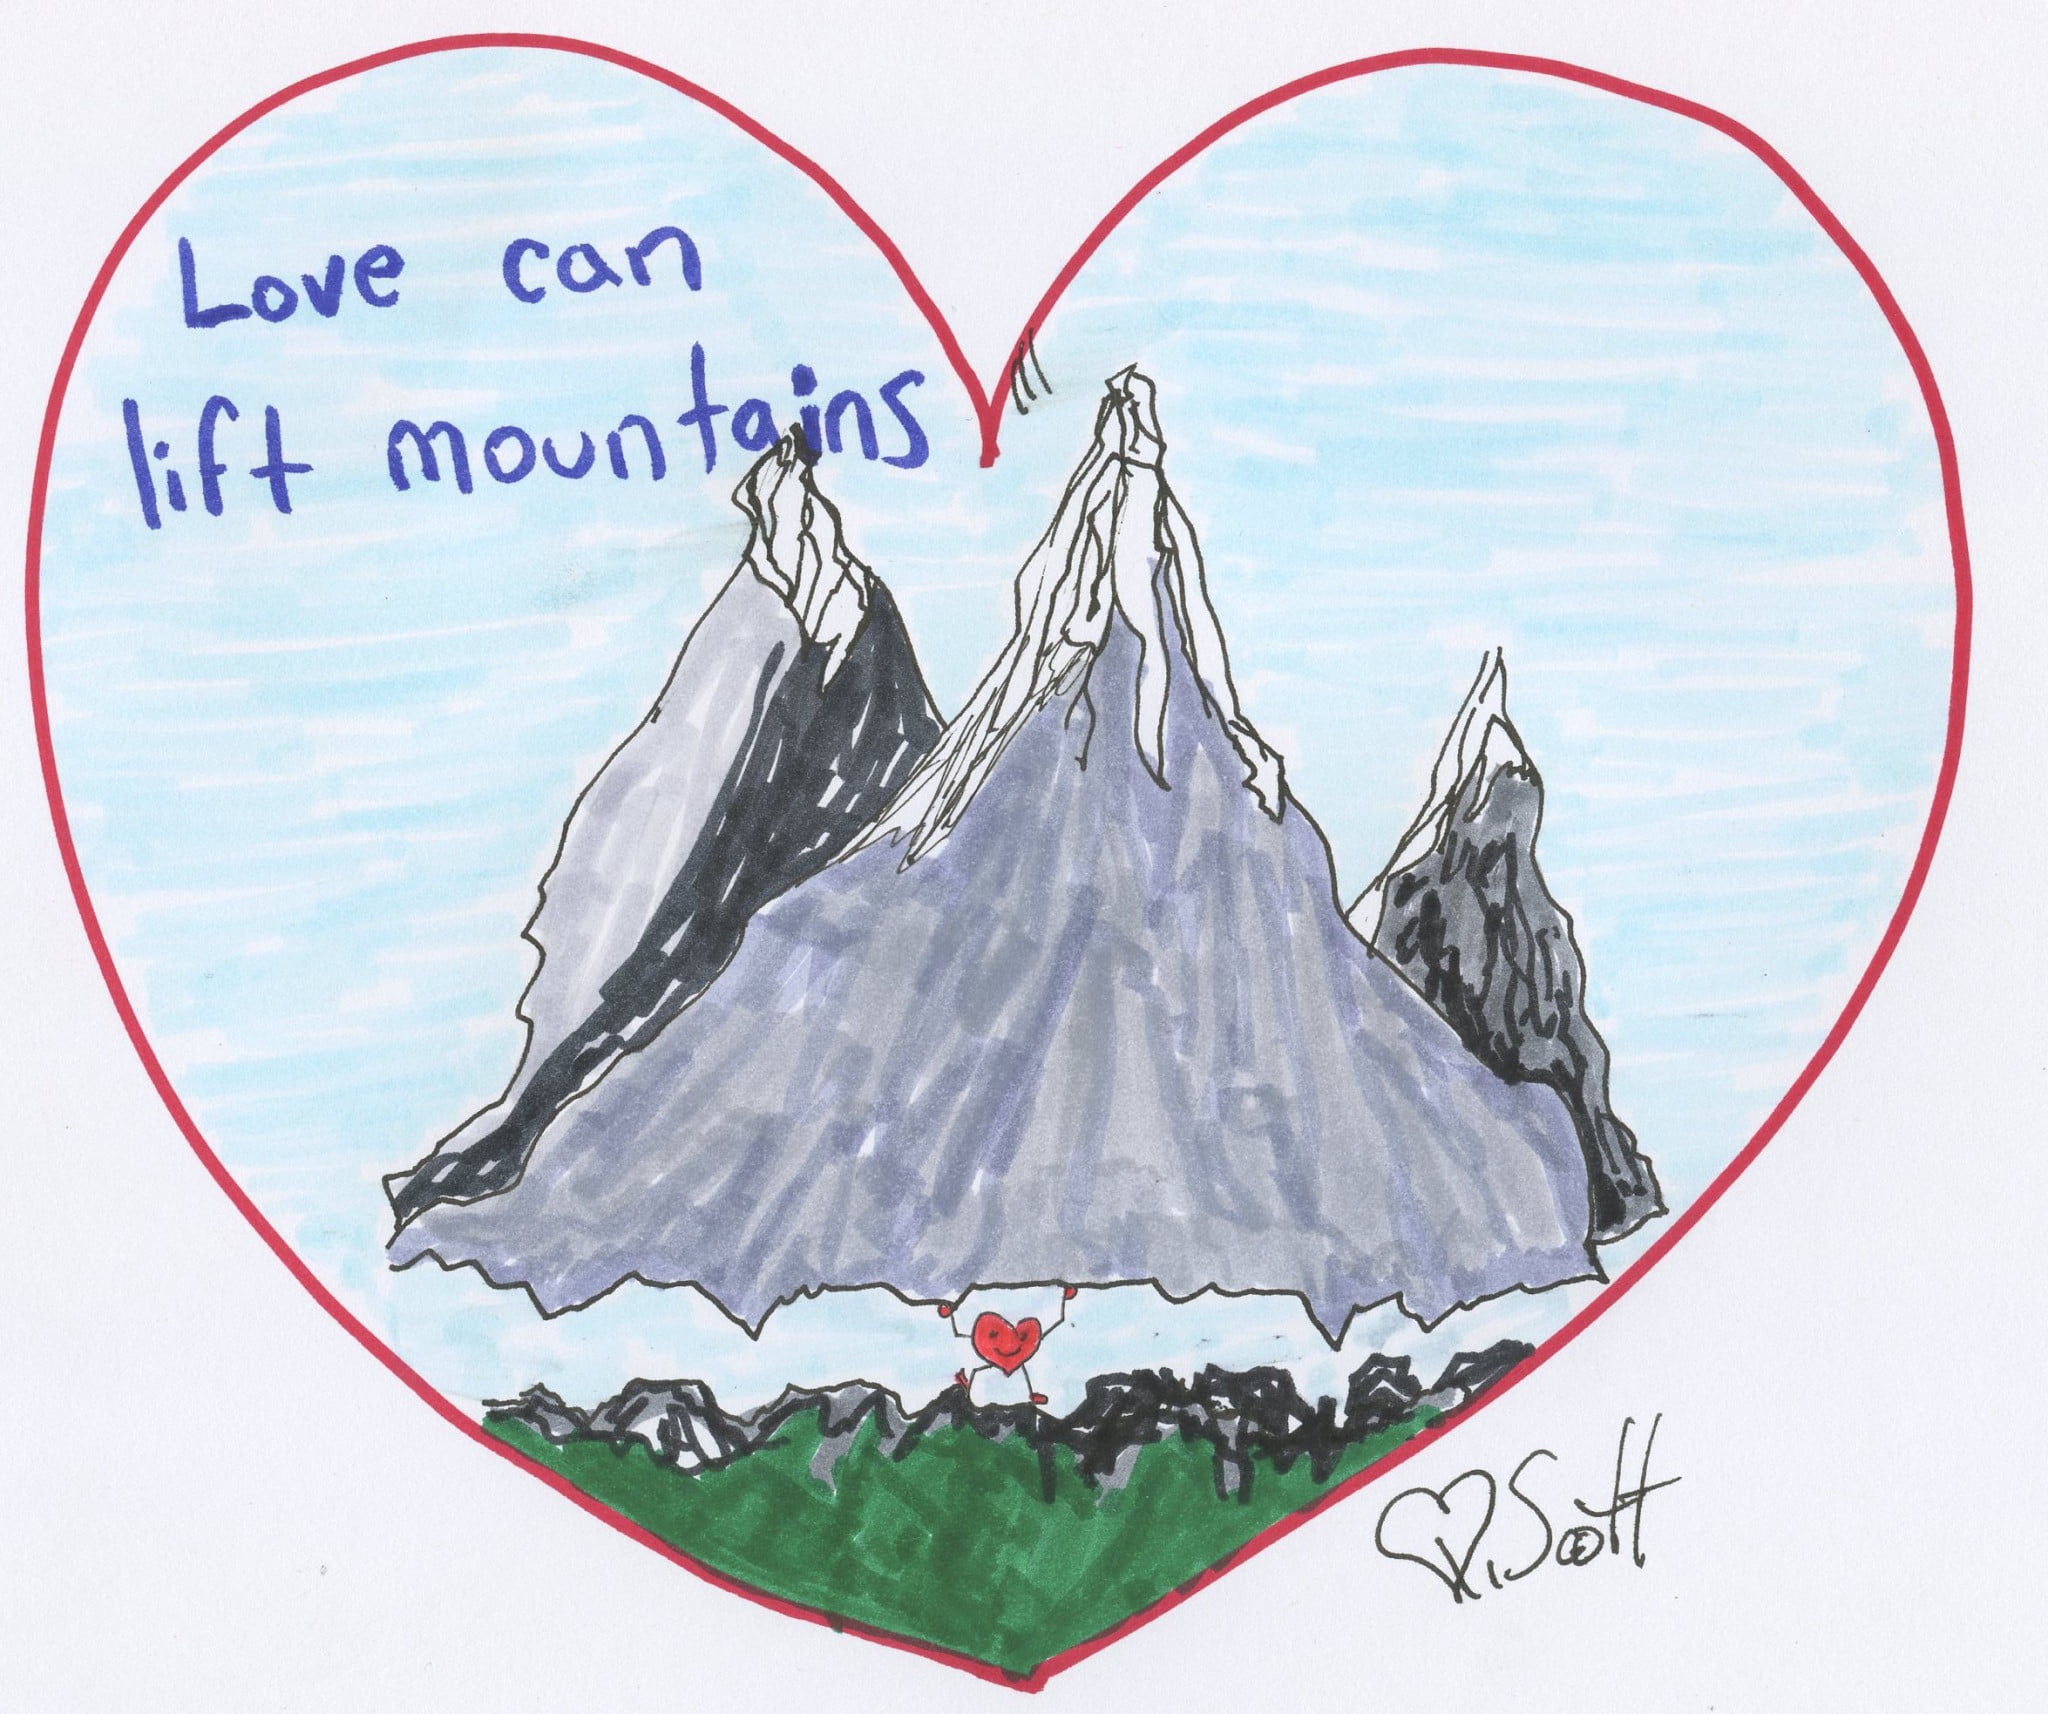 Love can lift mountains